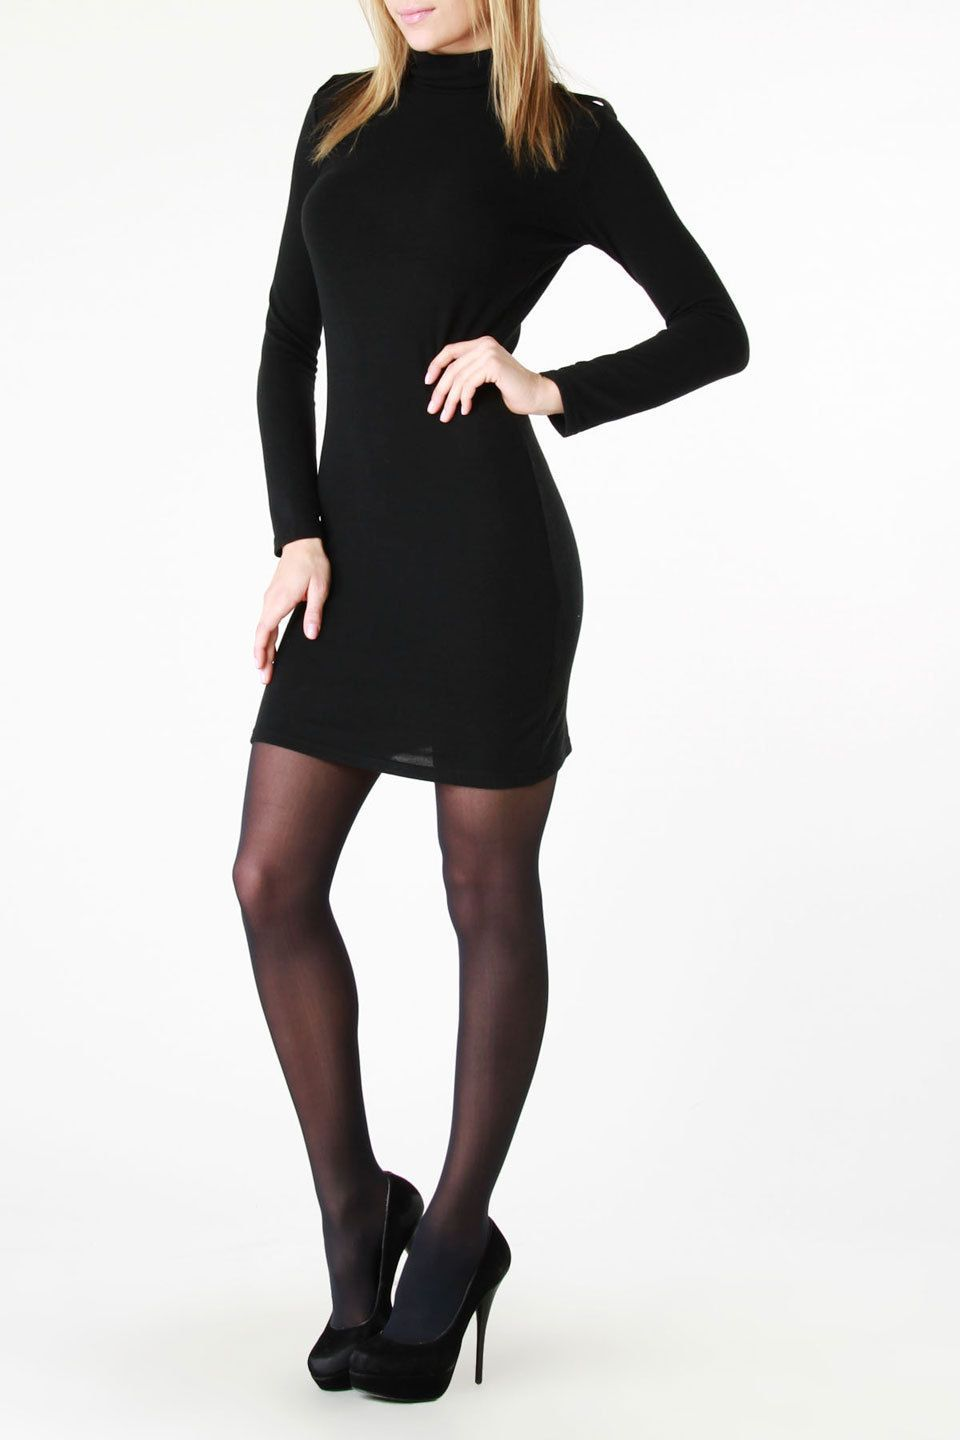 Chantal paris long sleeve turtleneck dress in black clothes and